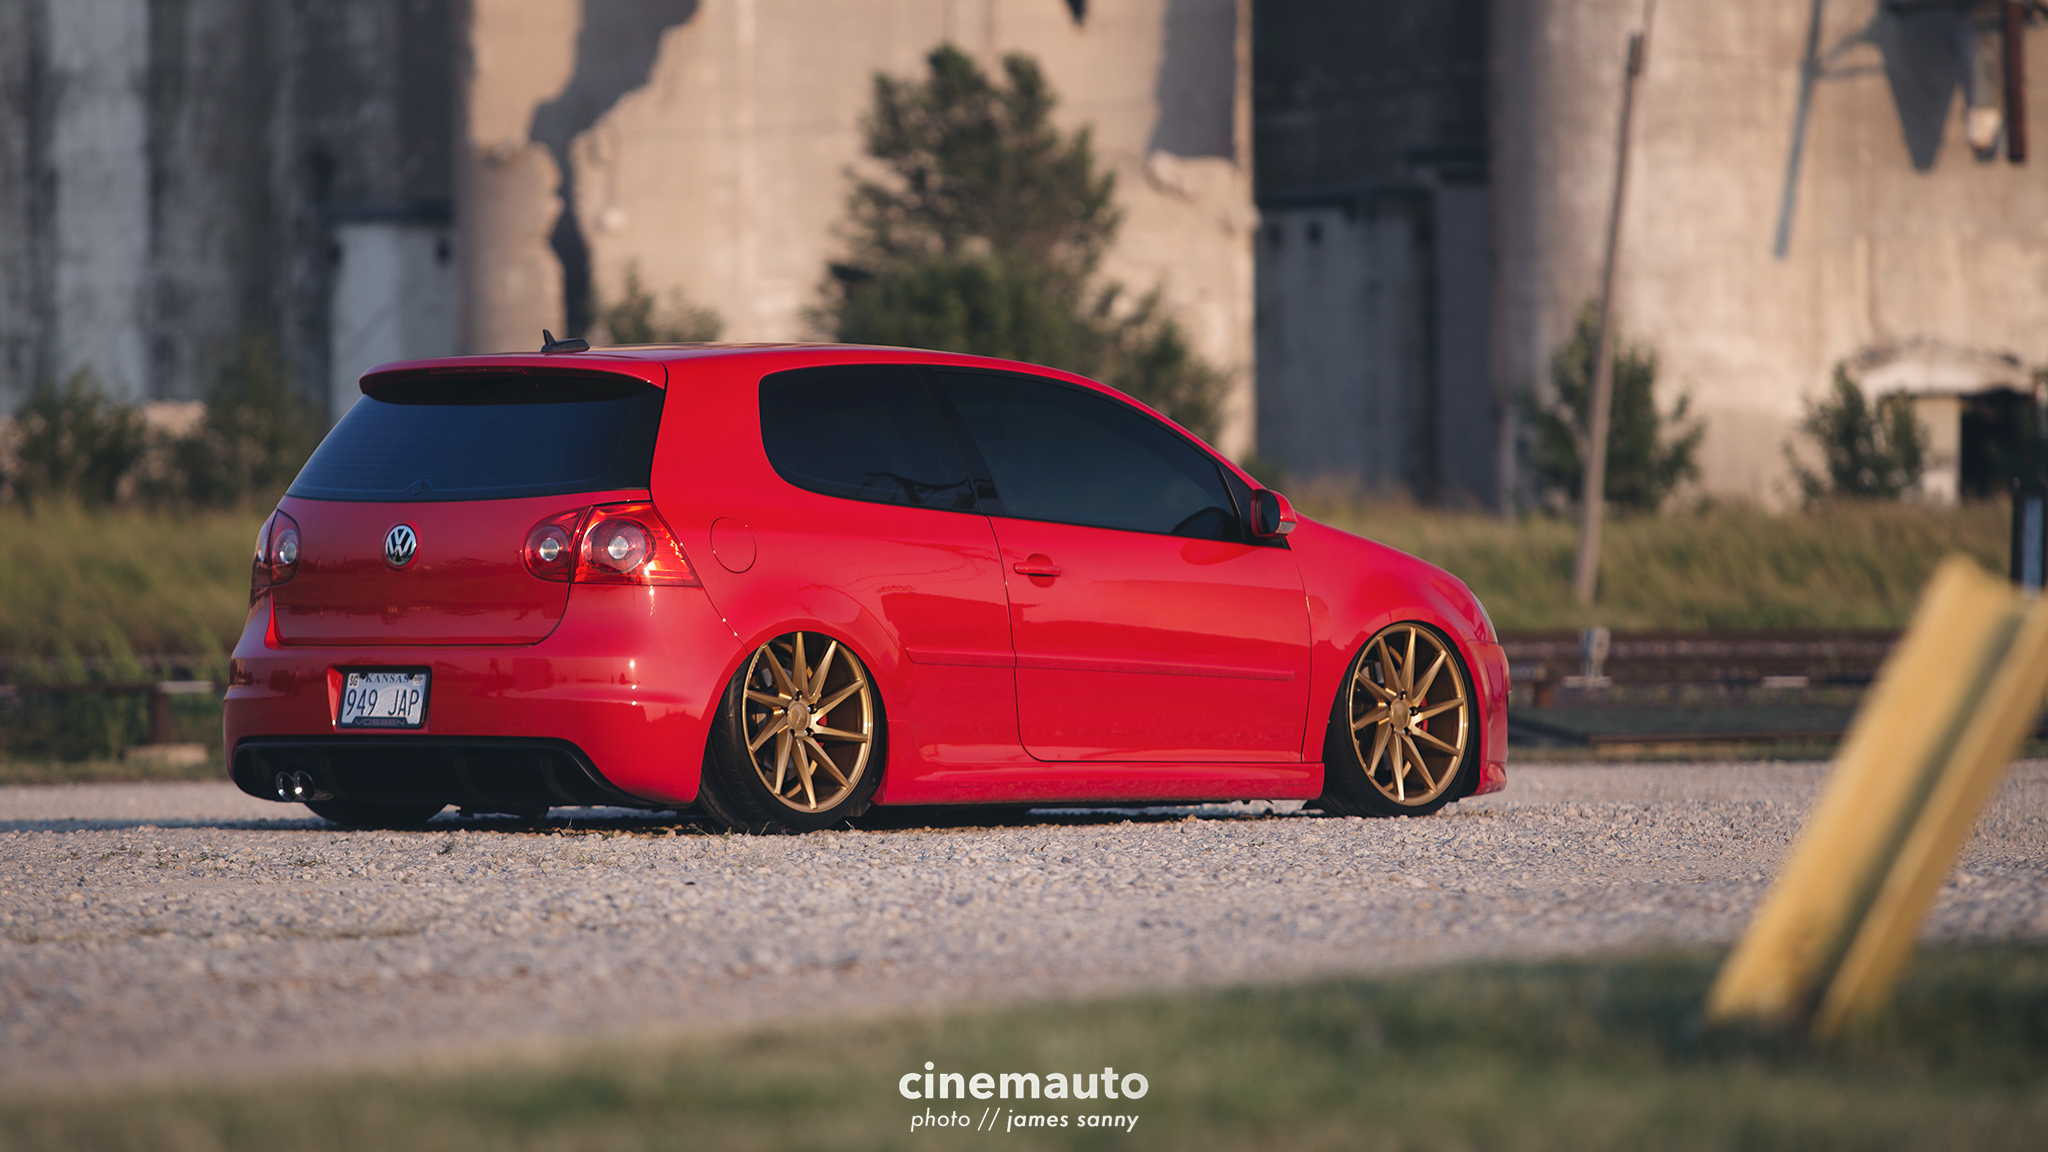 wichita-automotive-photographer-kansas-gti5.jpg